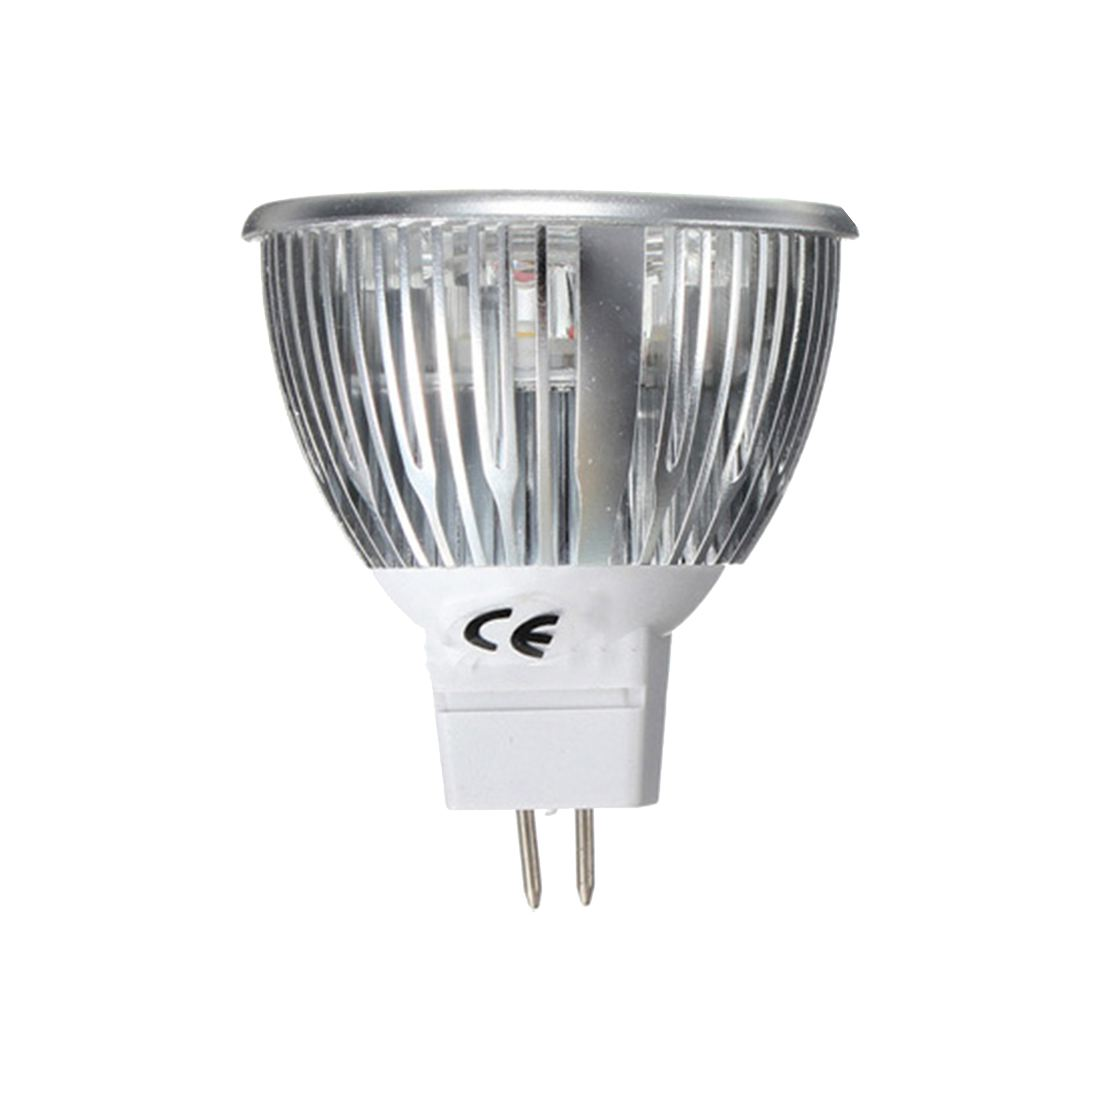 MR16 Pure / Warm LED Light Bulb Pure White - MR16-6W-3LED 12V 4